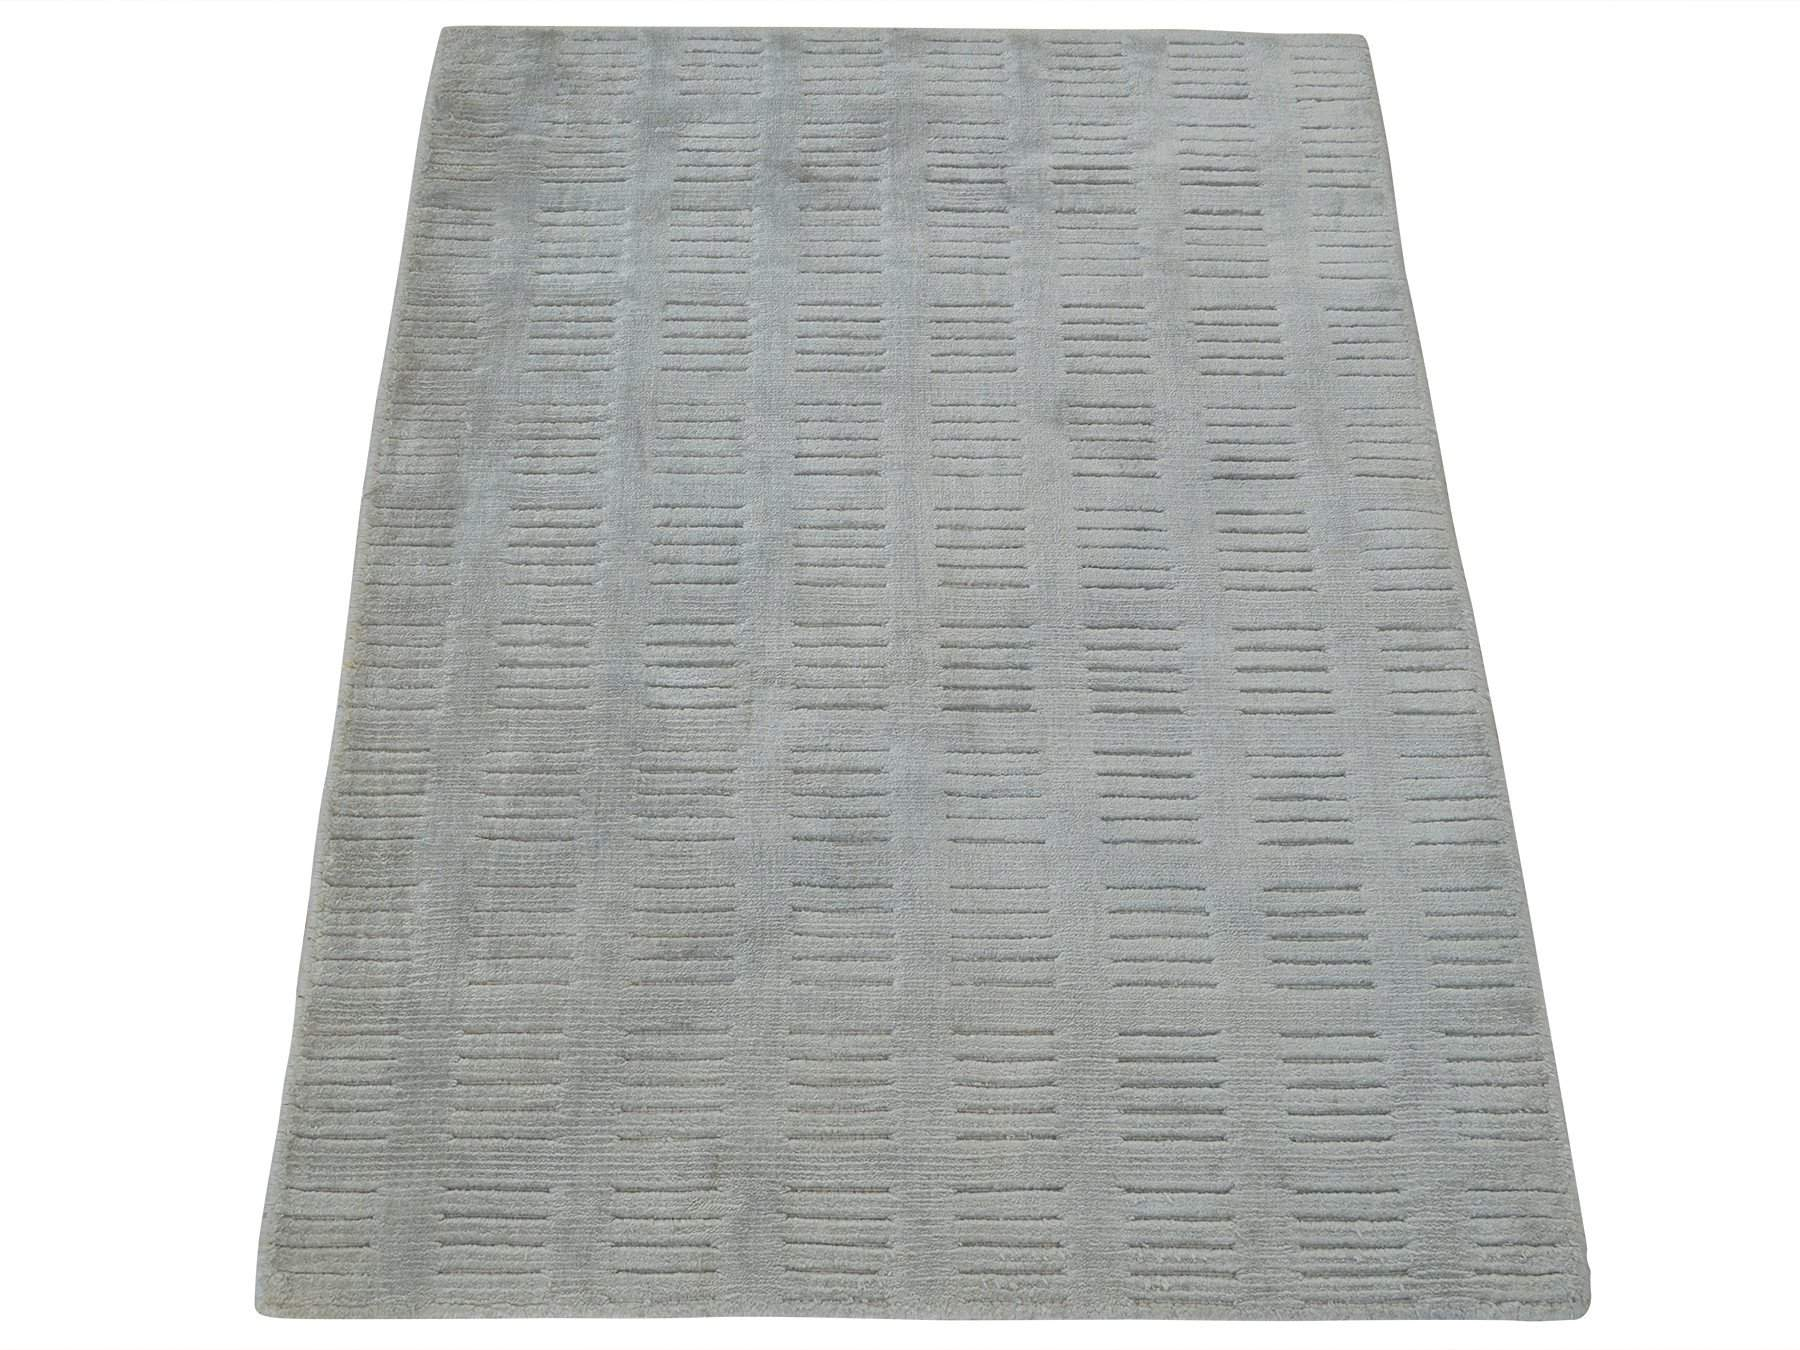 2' x 3' Modern Silk Oriental Area Rug-Area Rugs-Rug Shop and More